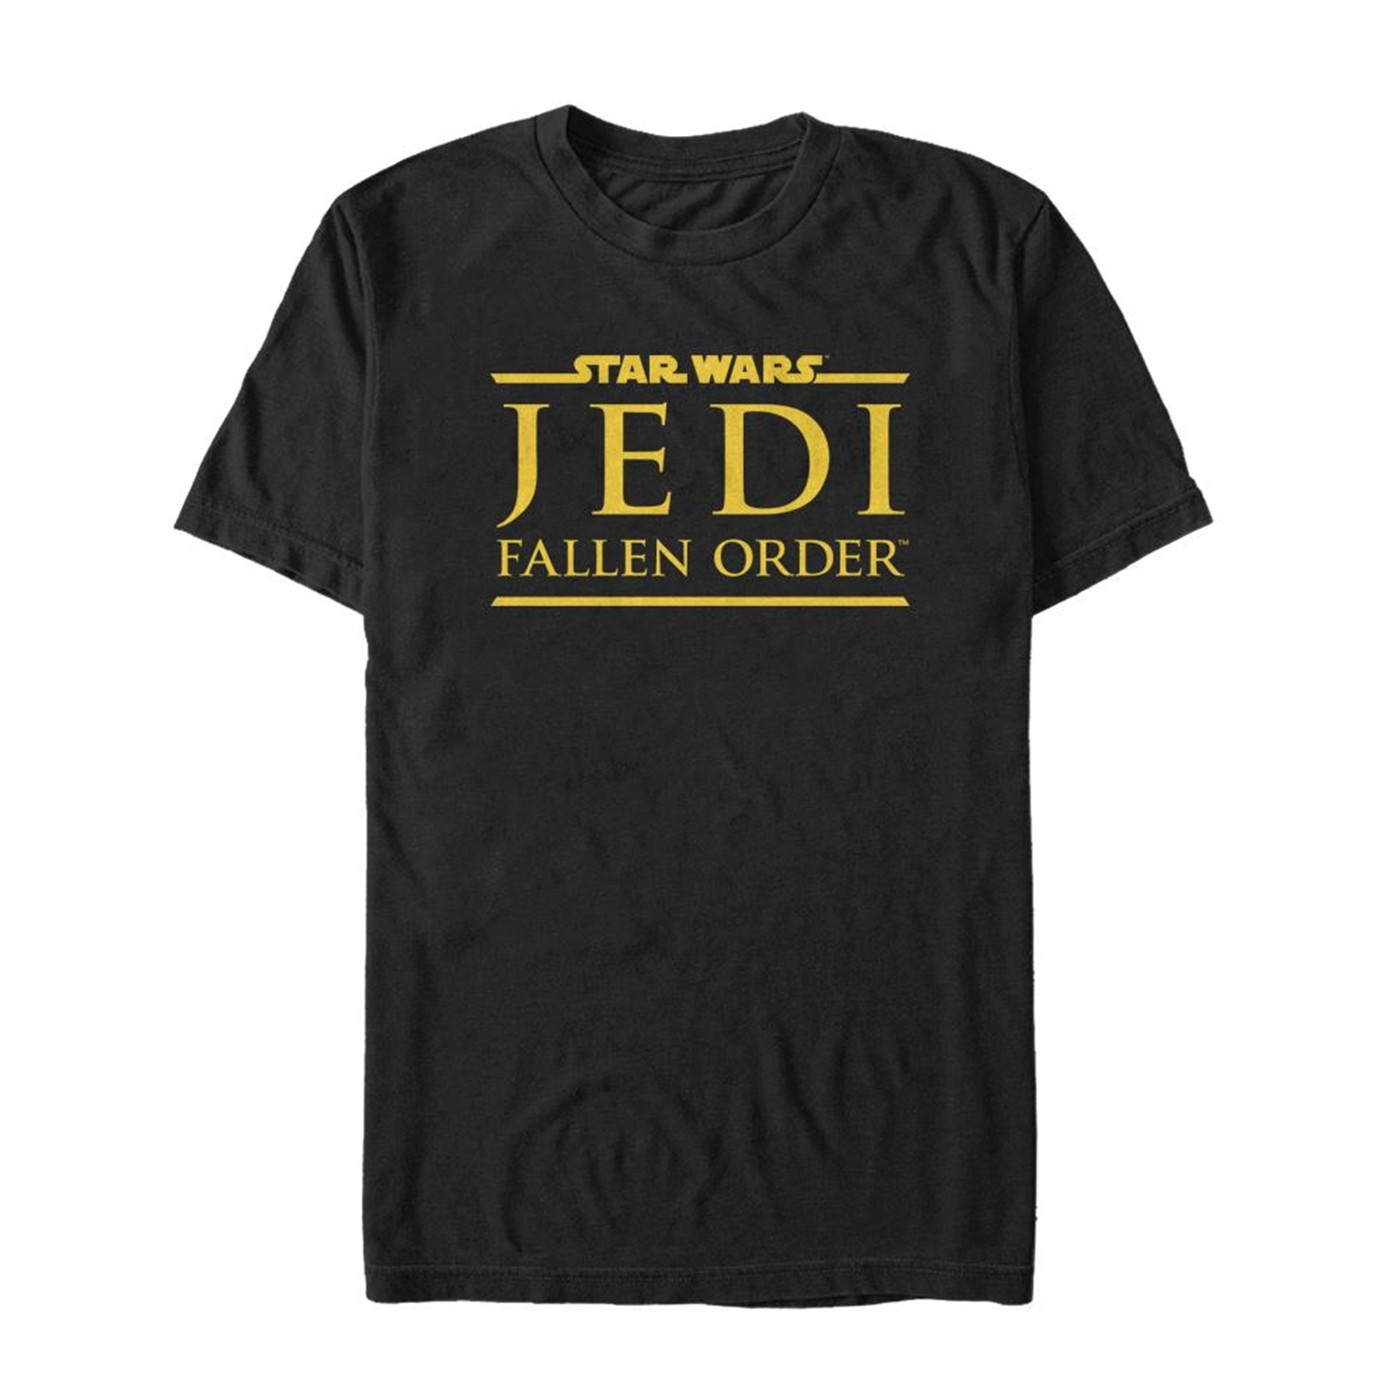 Star Wars Jedi Fallen Order Men's T-Shirt